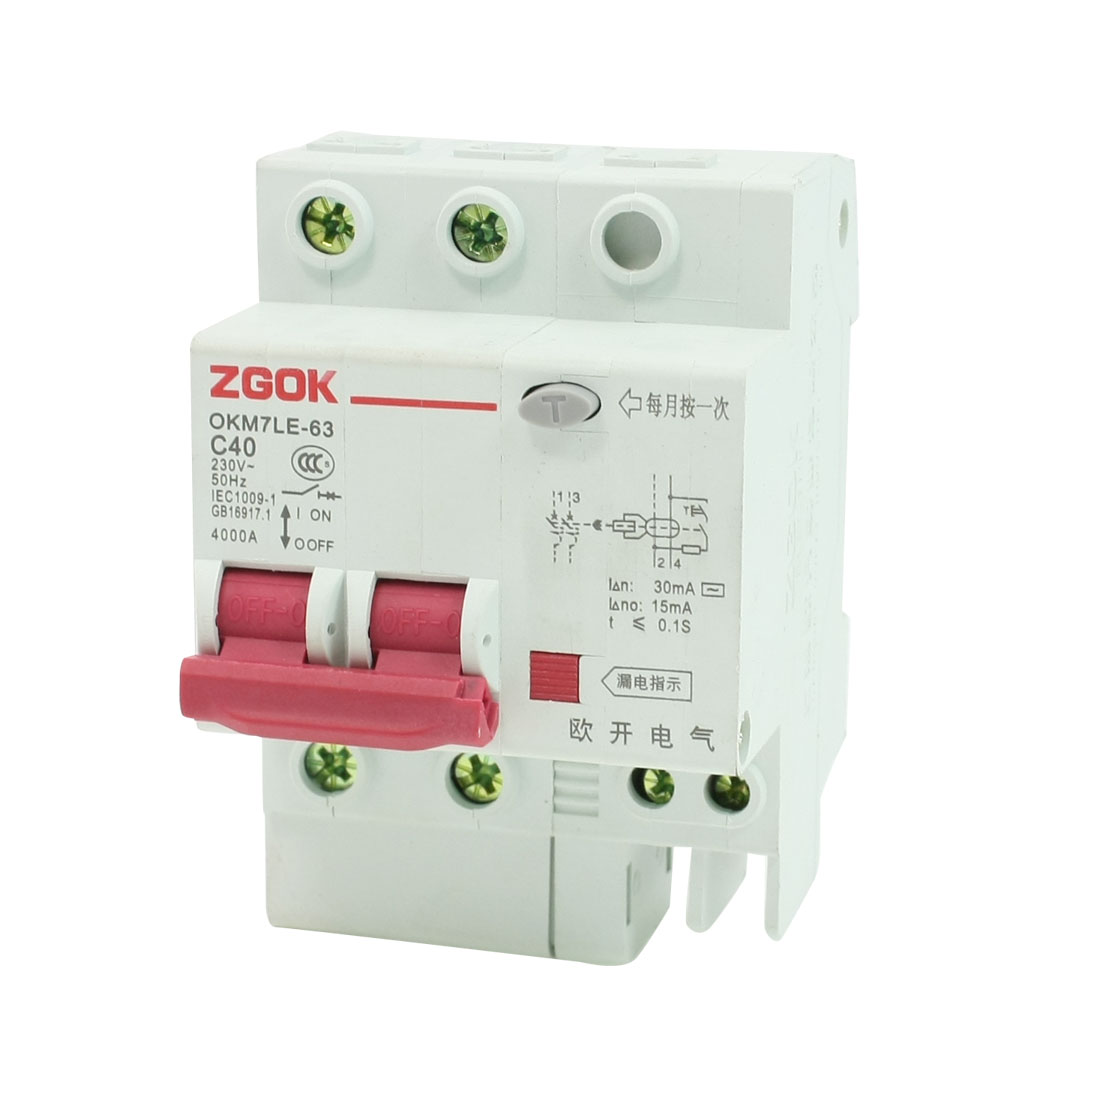 AC 230V C40 40A Rated Current 2 Pole ELCB Earth Leakage Circuit Breaker